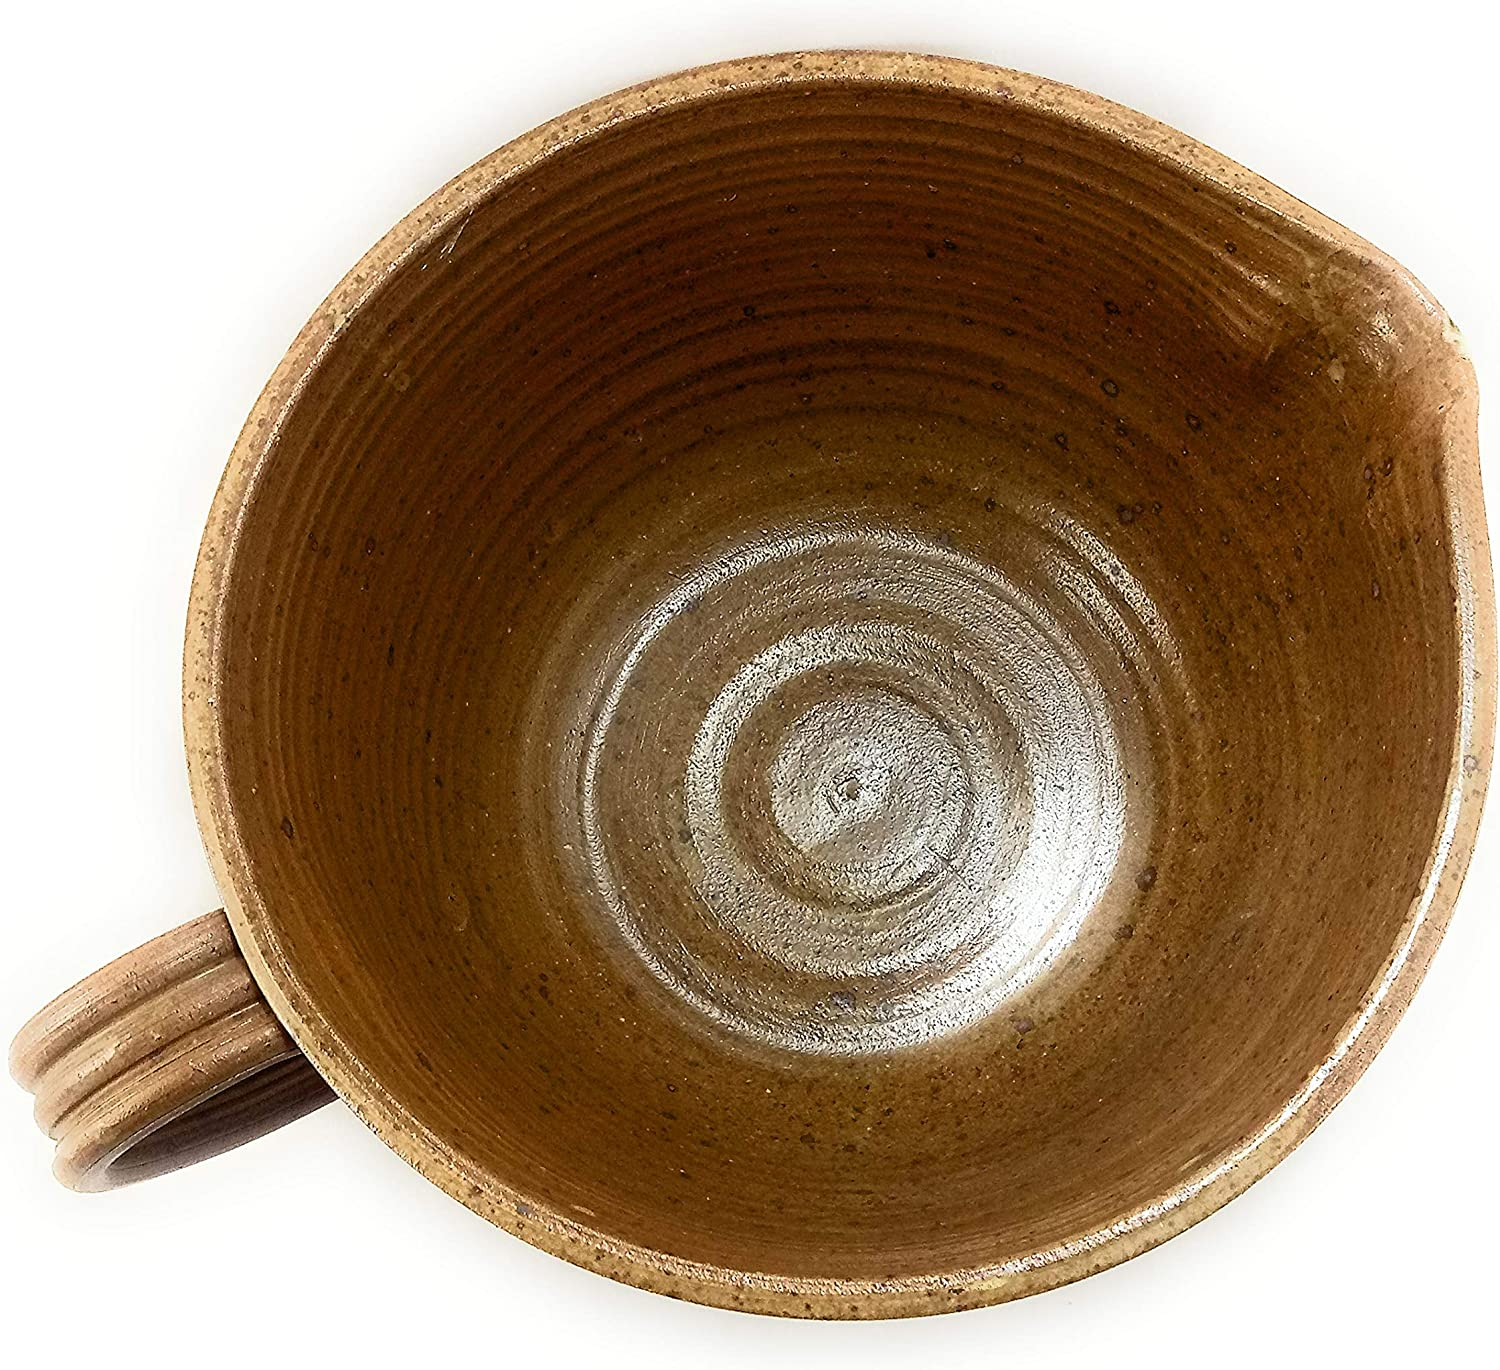 Large Tan Pottery Bowl with Loop Handle, Hand Made Clay, Microwave, Oven and Dishwasher Safe, Ceramic Batter Mixing Bowl with Spout for Easy Pouring - Approx Dim 8.5 Inches Diameter x 4-5 Inches Tall